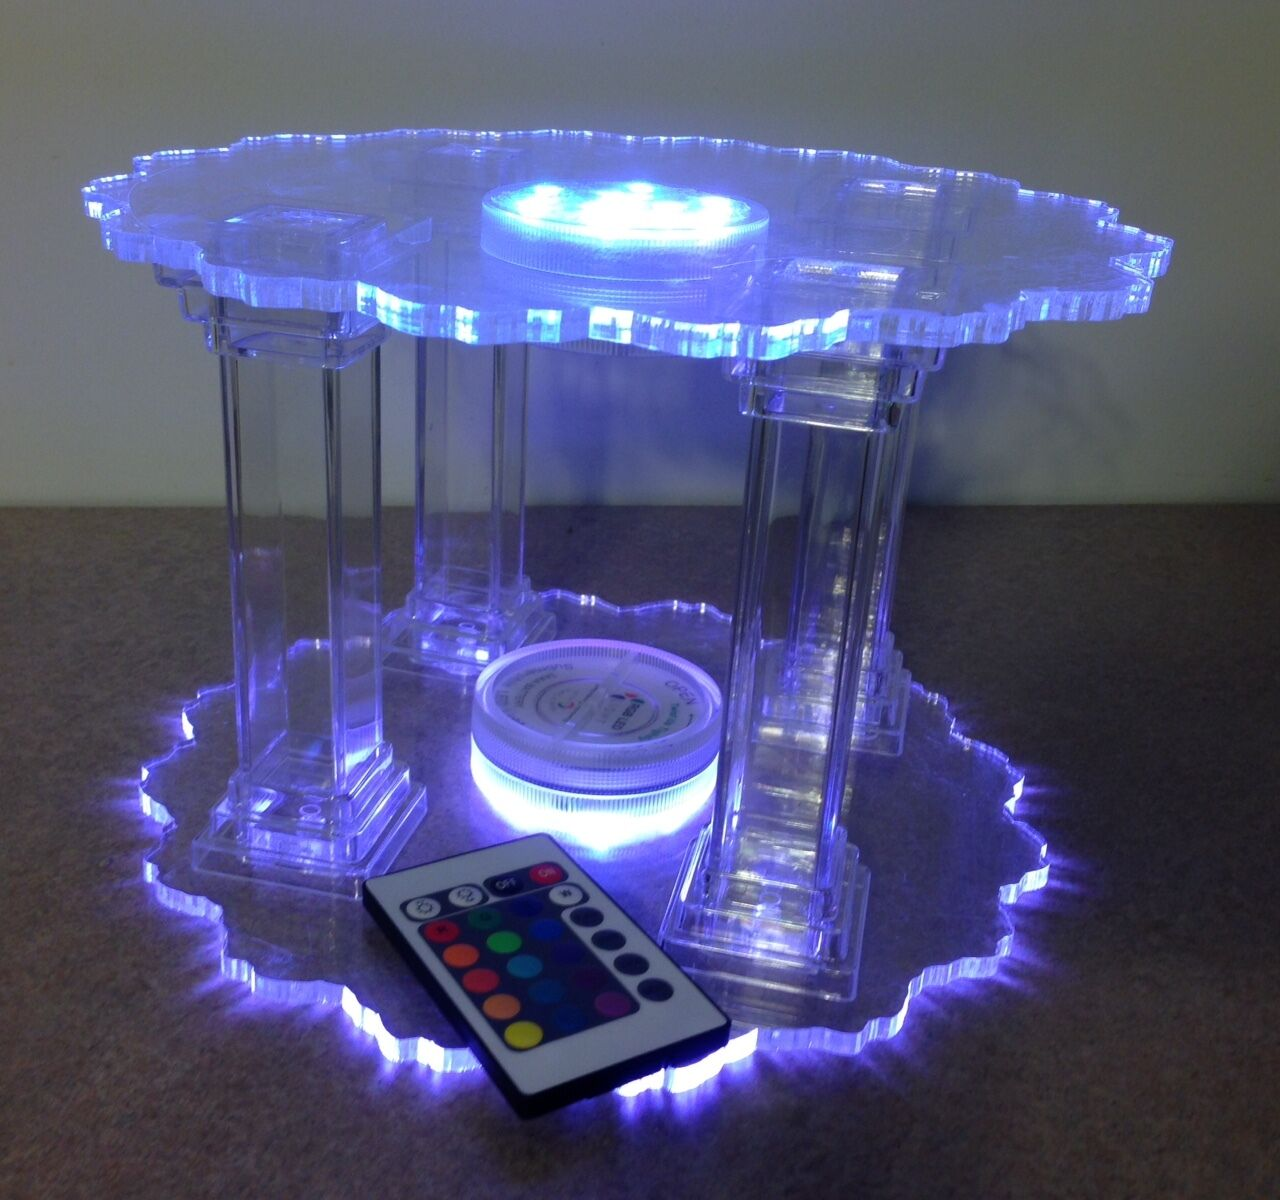 LIGHTED CAKE STAND OR PLATES WEDDINGS BIRTHDAY ANNIVERSARY ANNIVERSARY ANNIVERSARY CAKES f4f84f